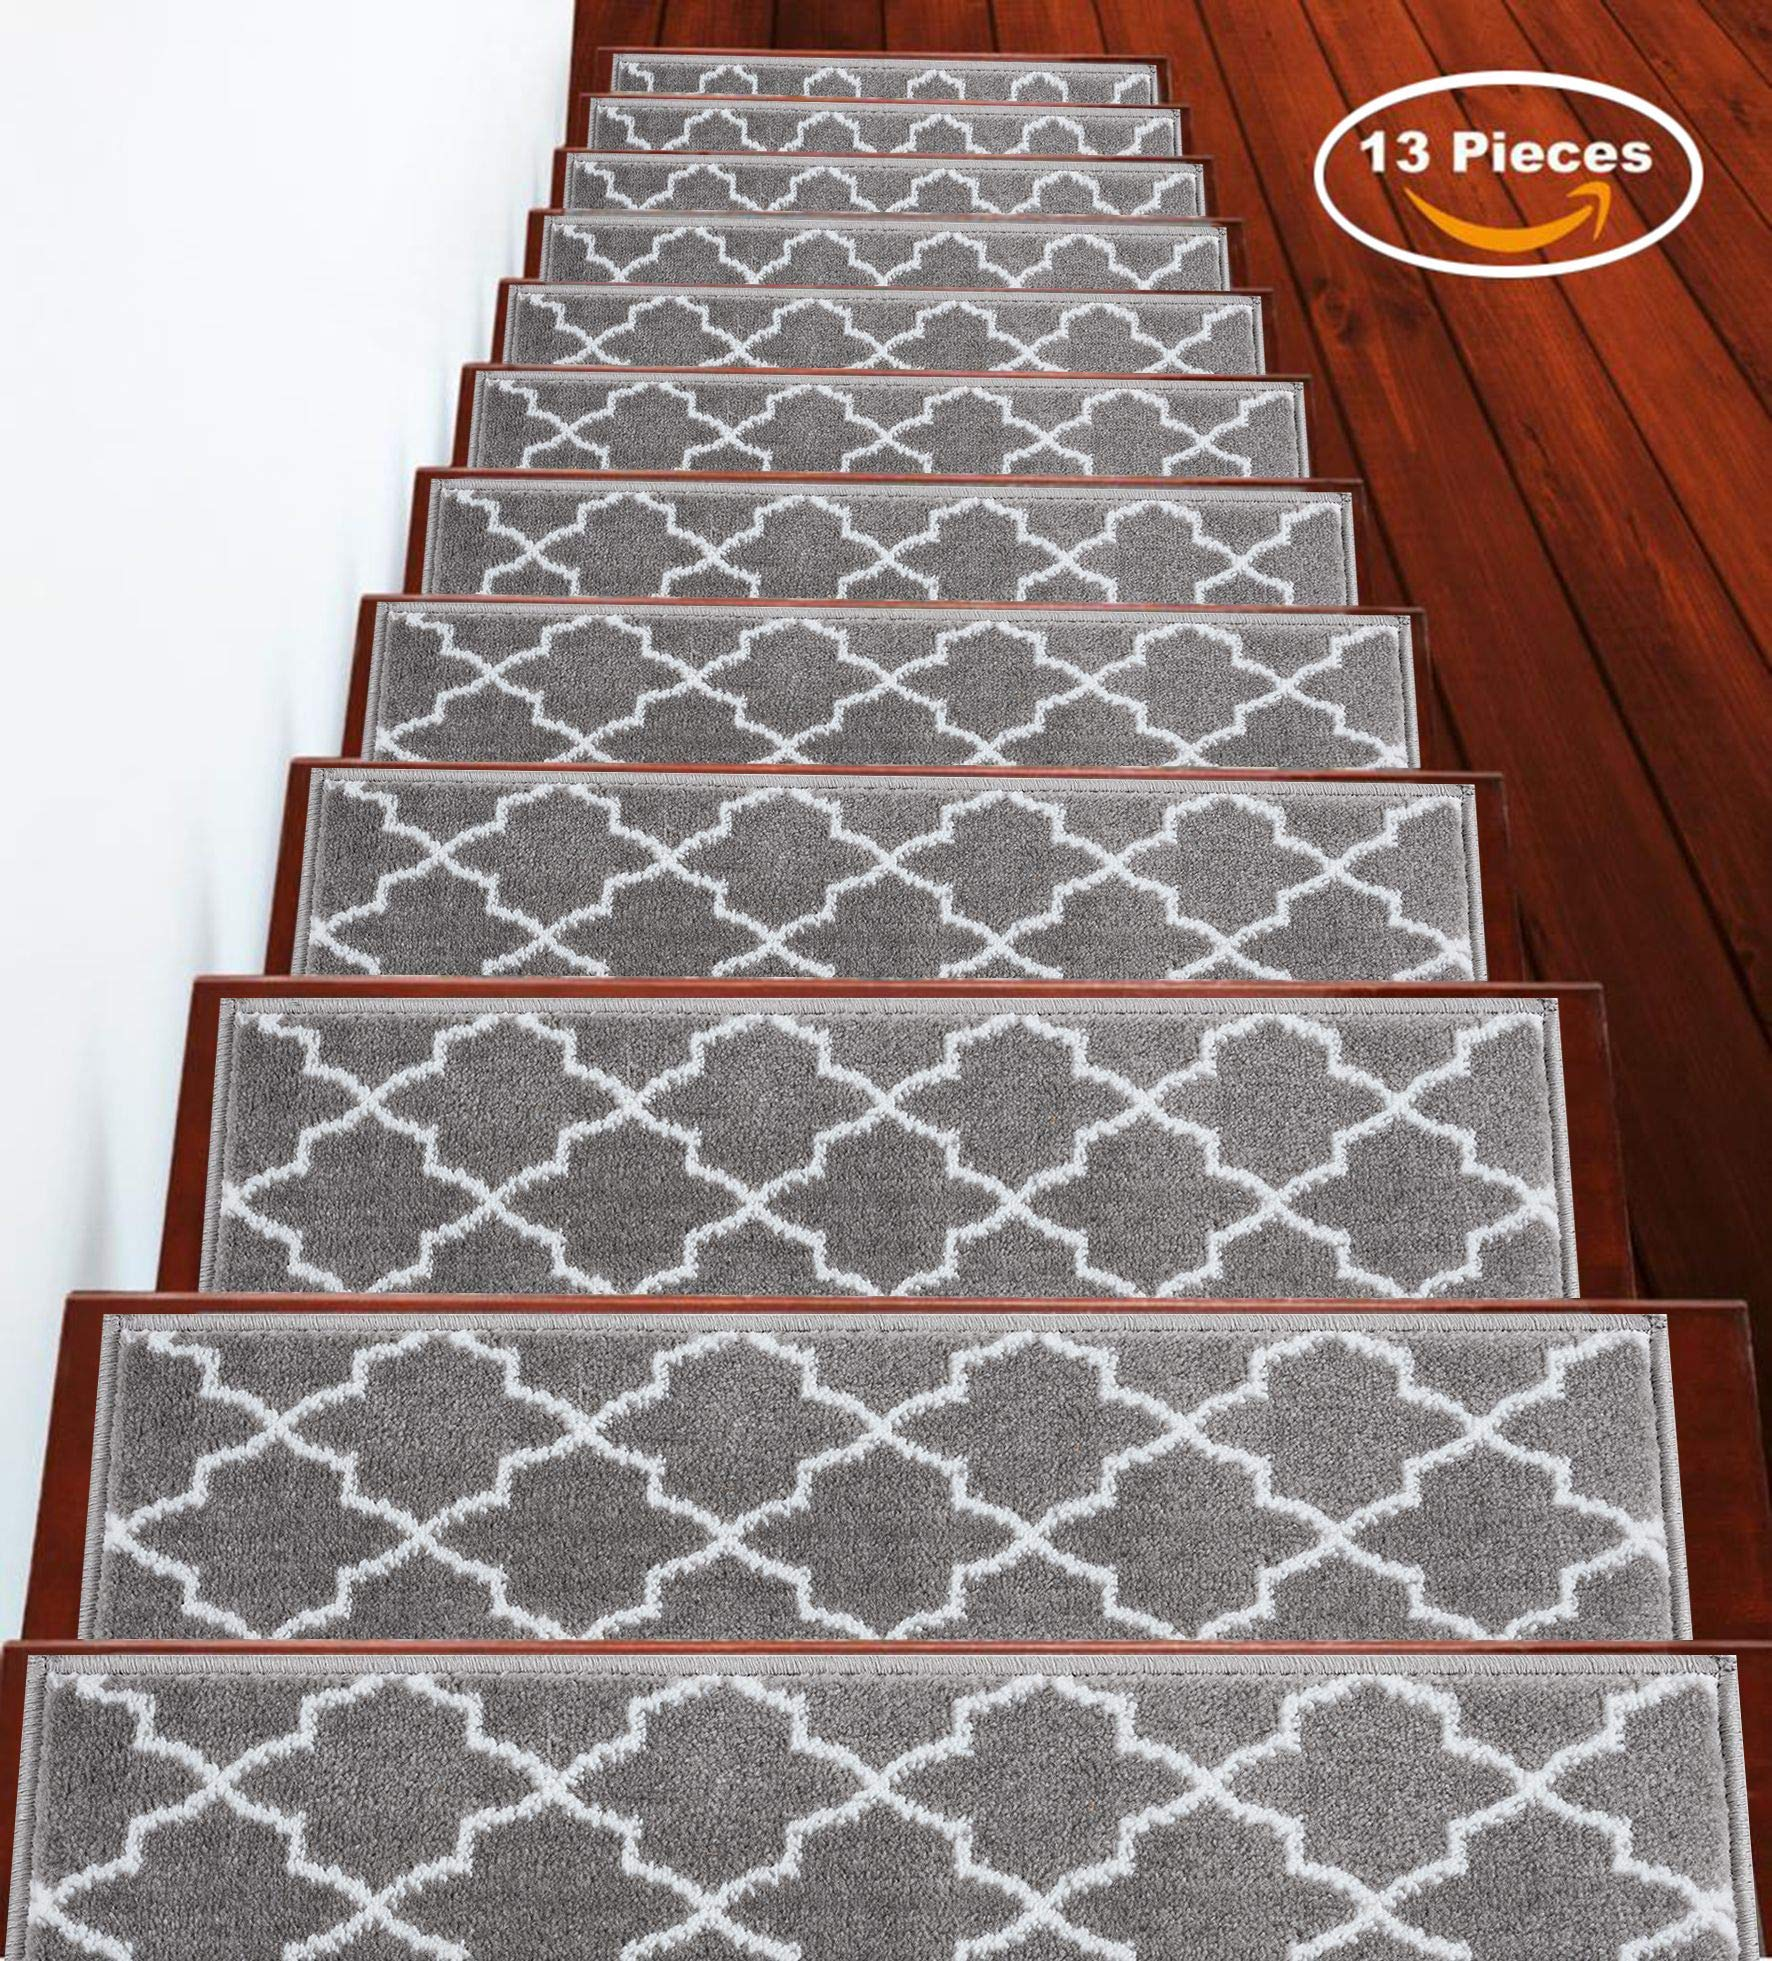 Stair Treads 9 inch by 28 inch Trellisville Collection Contemporary, Cozy, Vibrant and Soft Stair Treads, Gray & White, Pack of 13 [100% Polypropylene] by Sussexhome